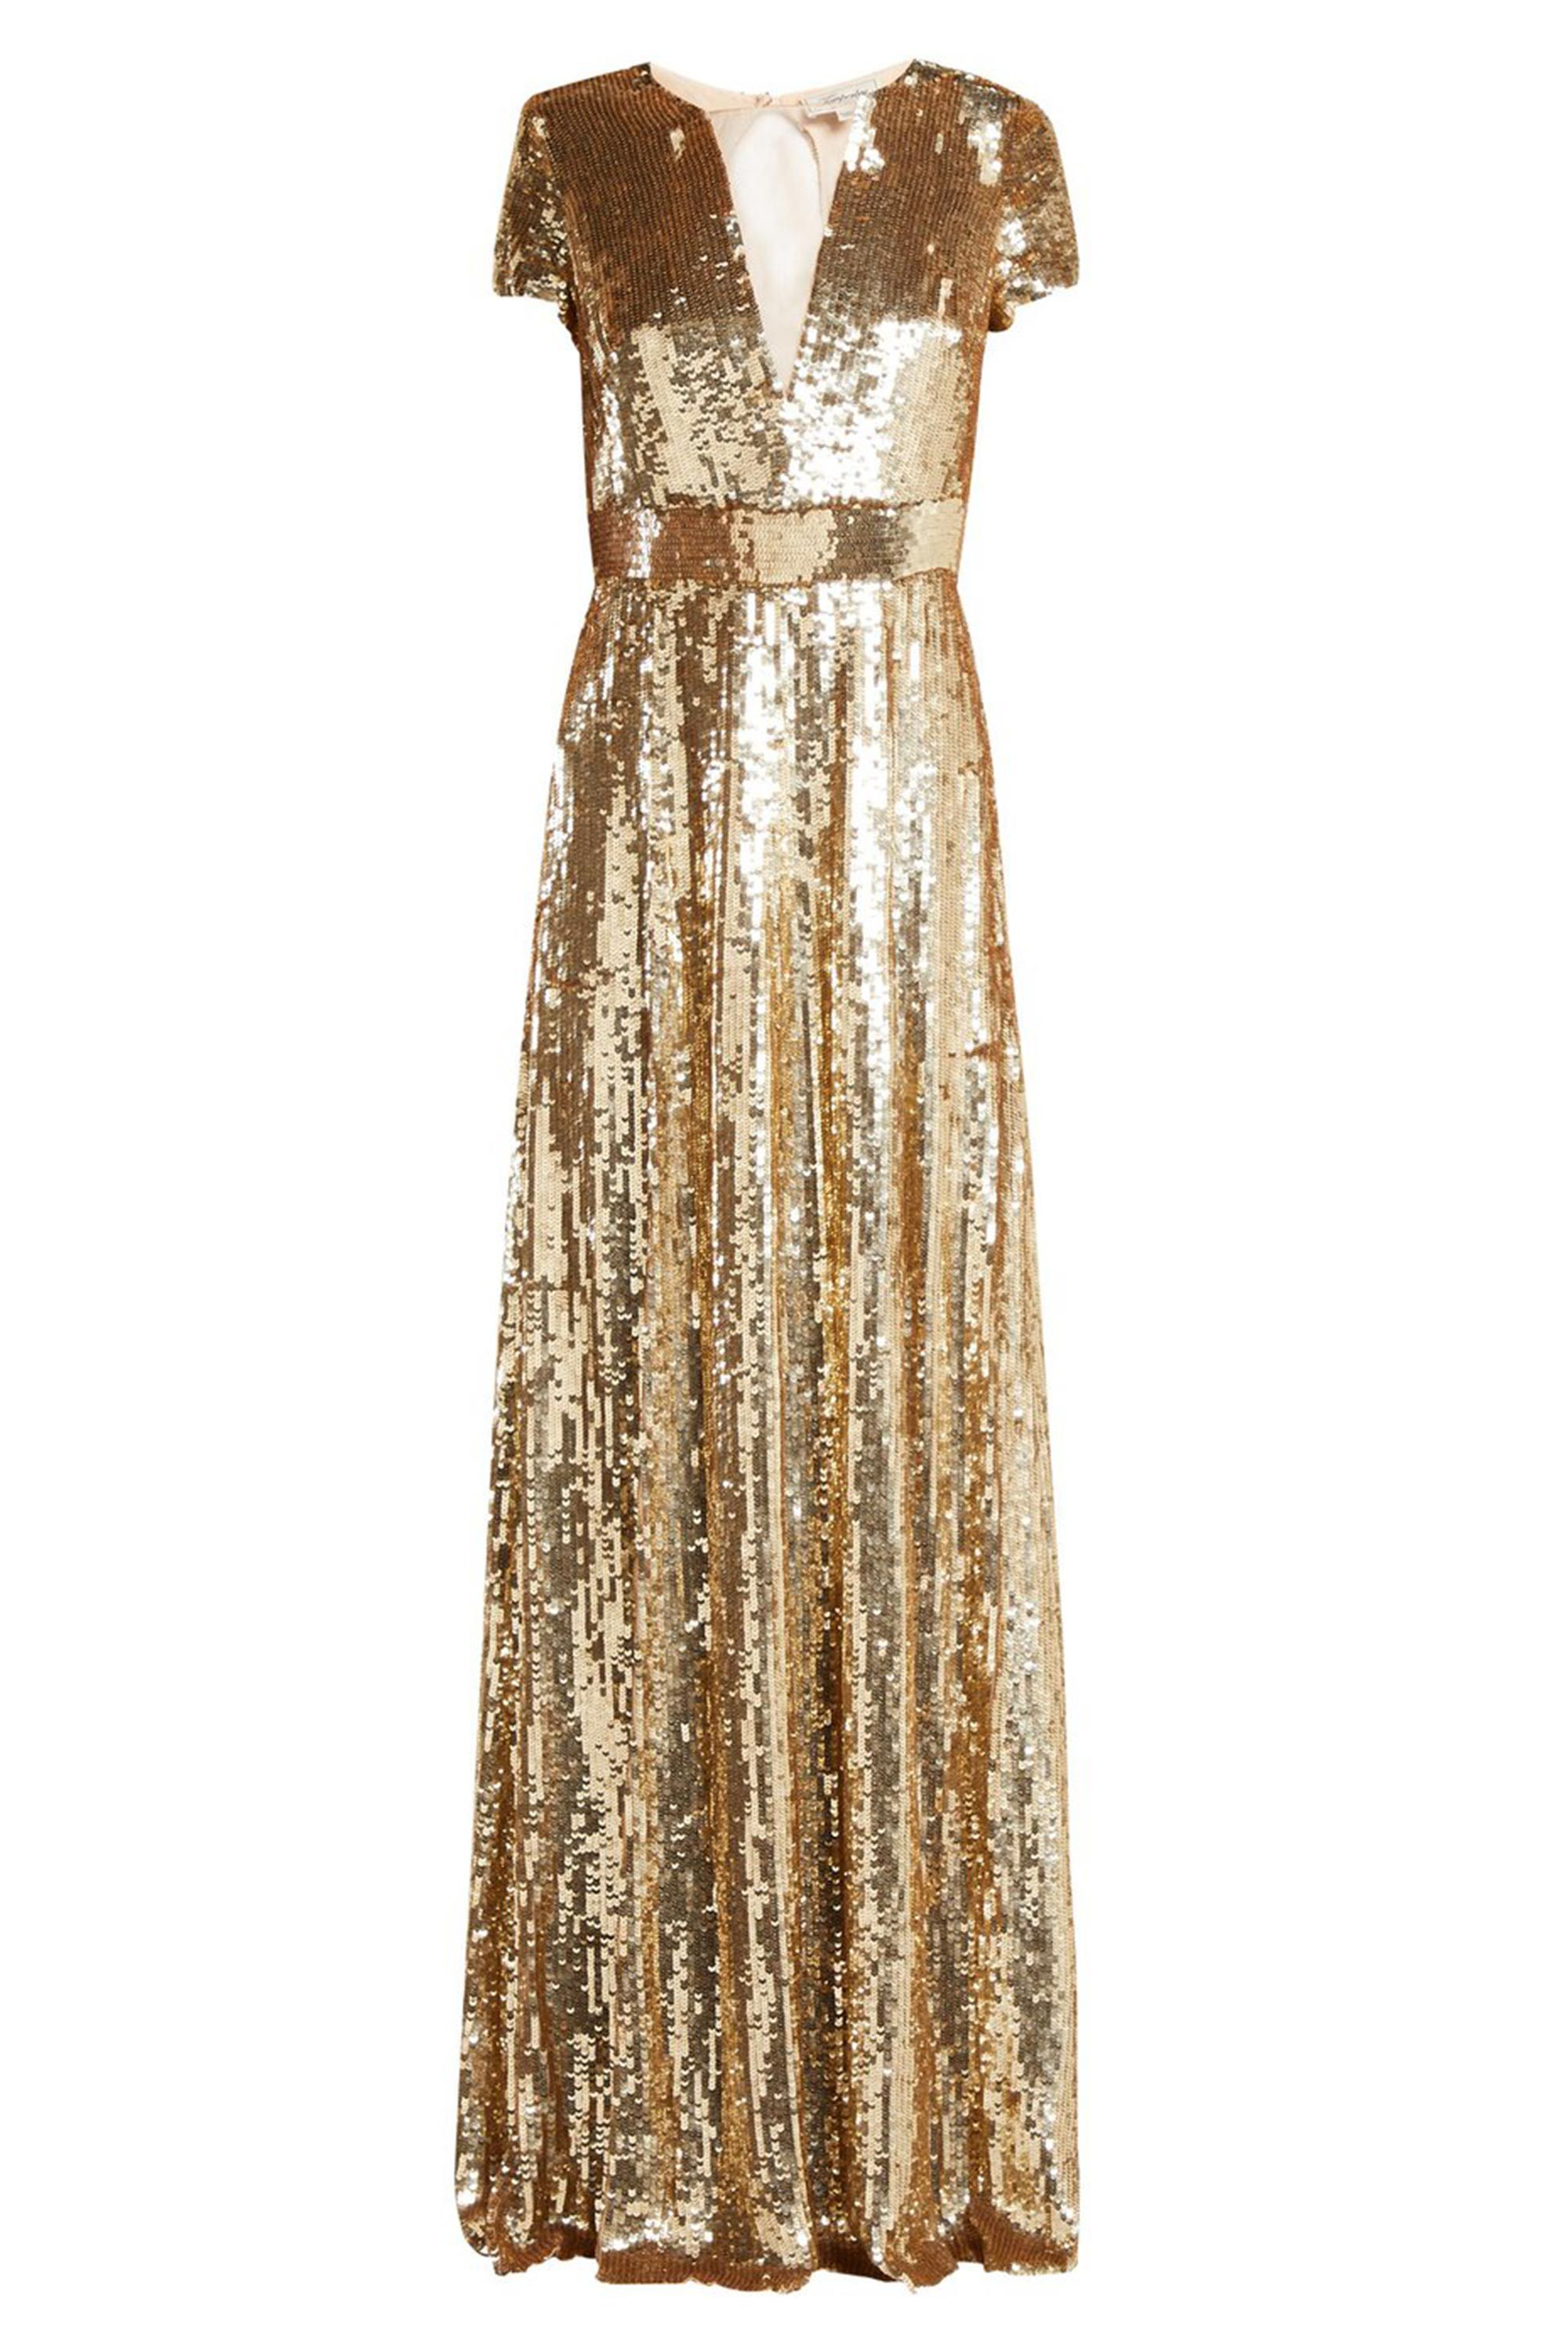 What to wear for New Year\'s Eve – Dresses and outfit ideas for NYE